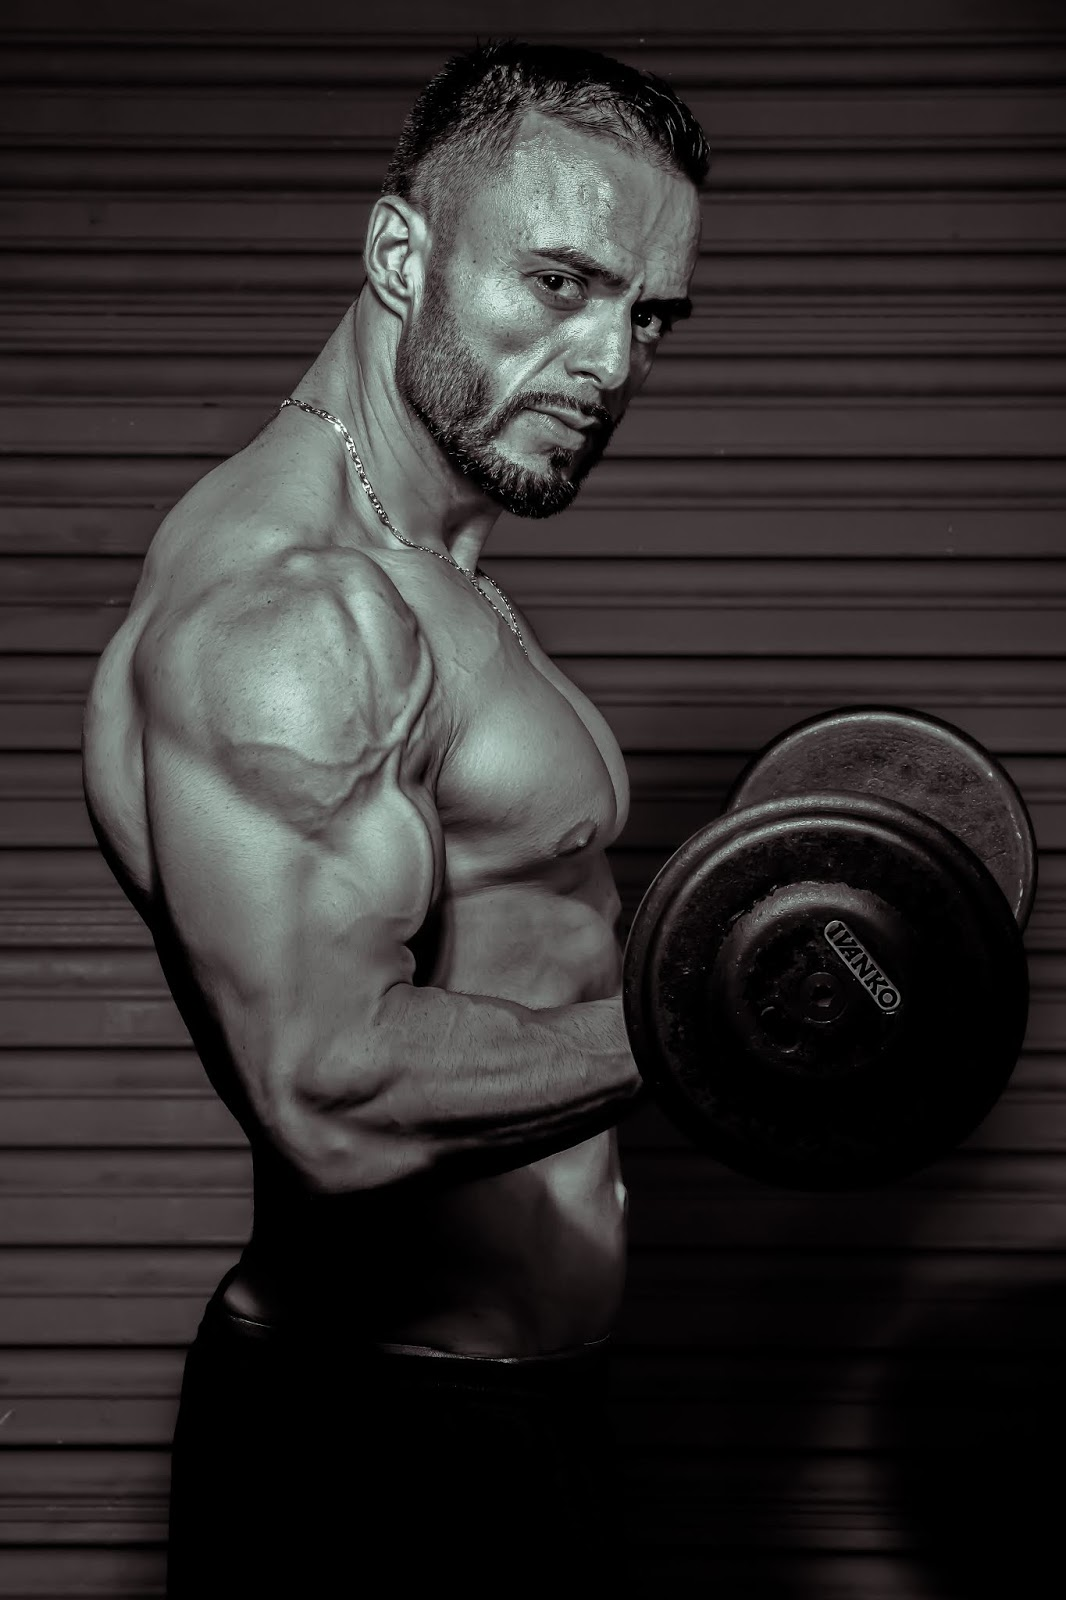 What are the Effects of Steroids on Bodybuilding?